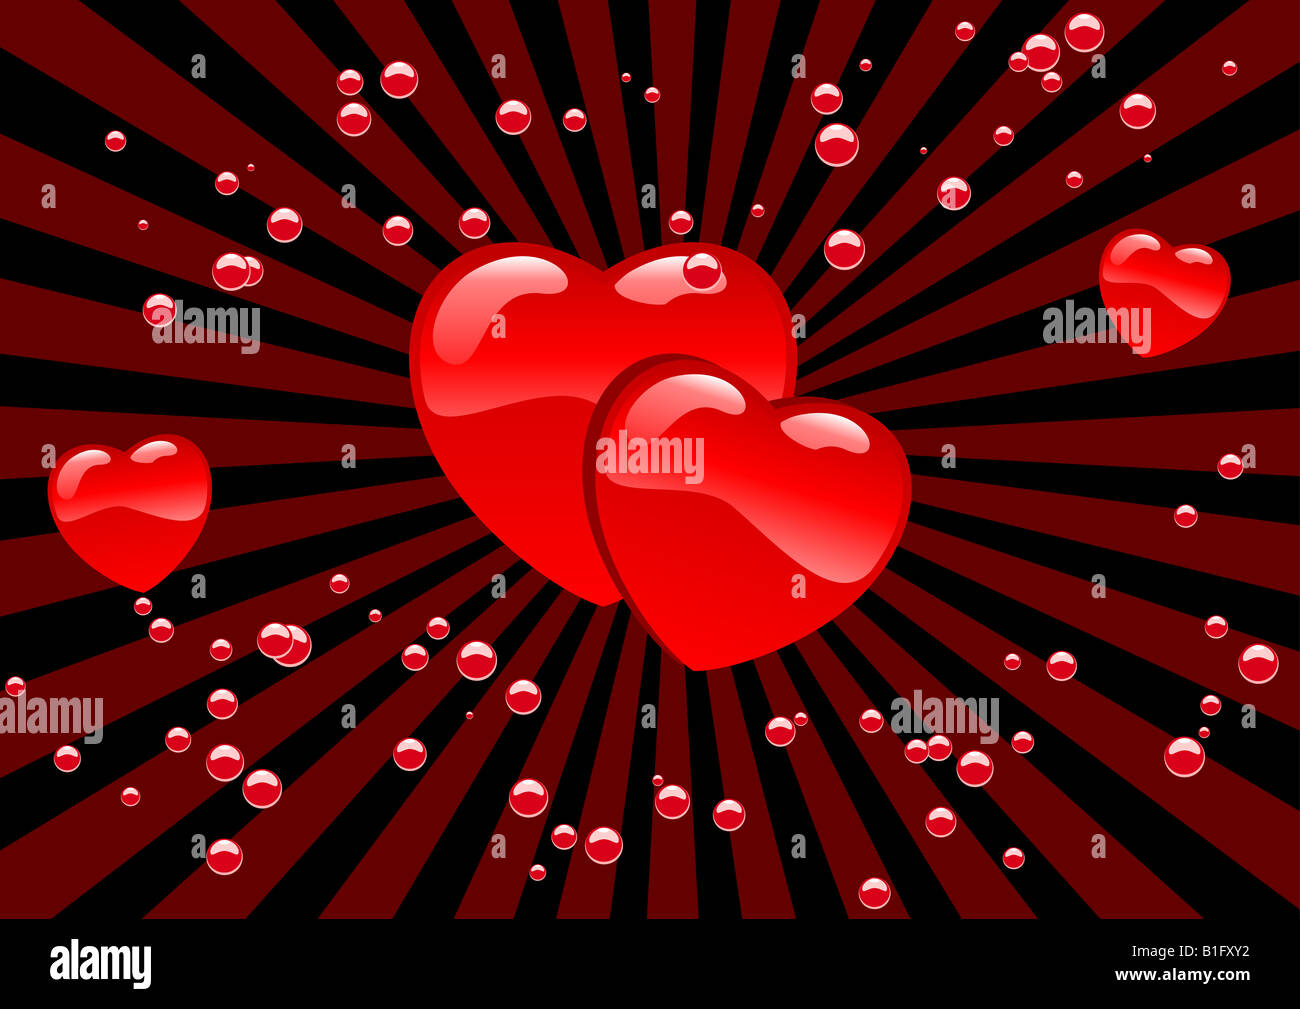 Abstract vector illustration of hearts and bubbles - Stock Image